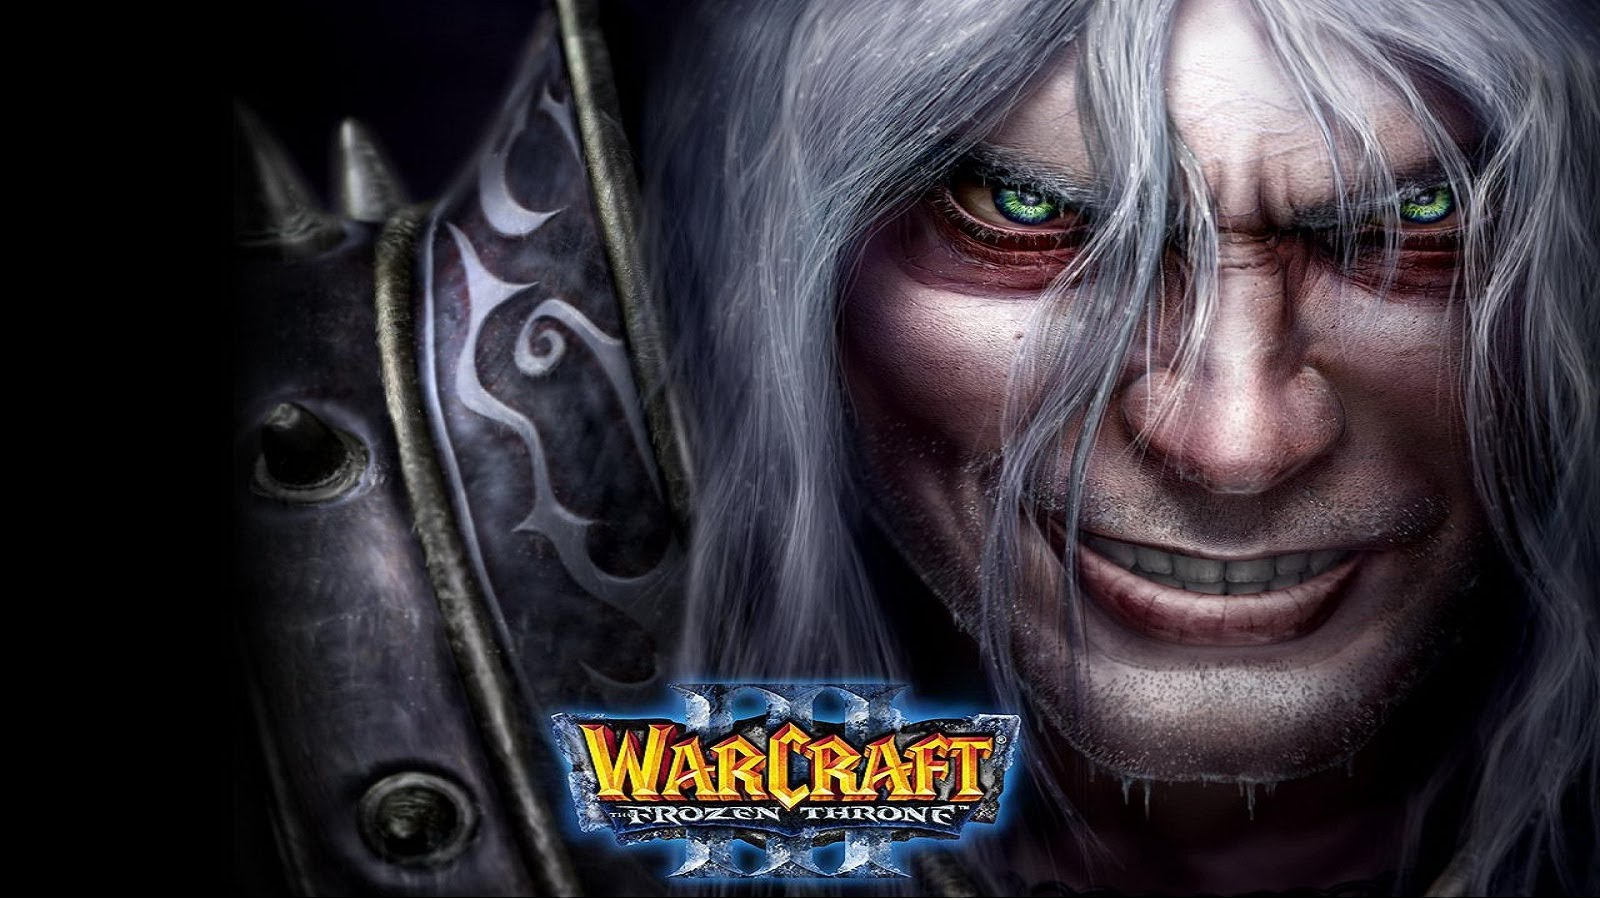 Power of the Horde - Bản hùng ca Warcraft 3